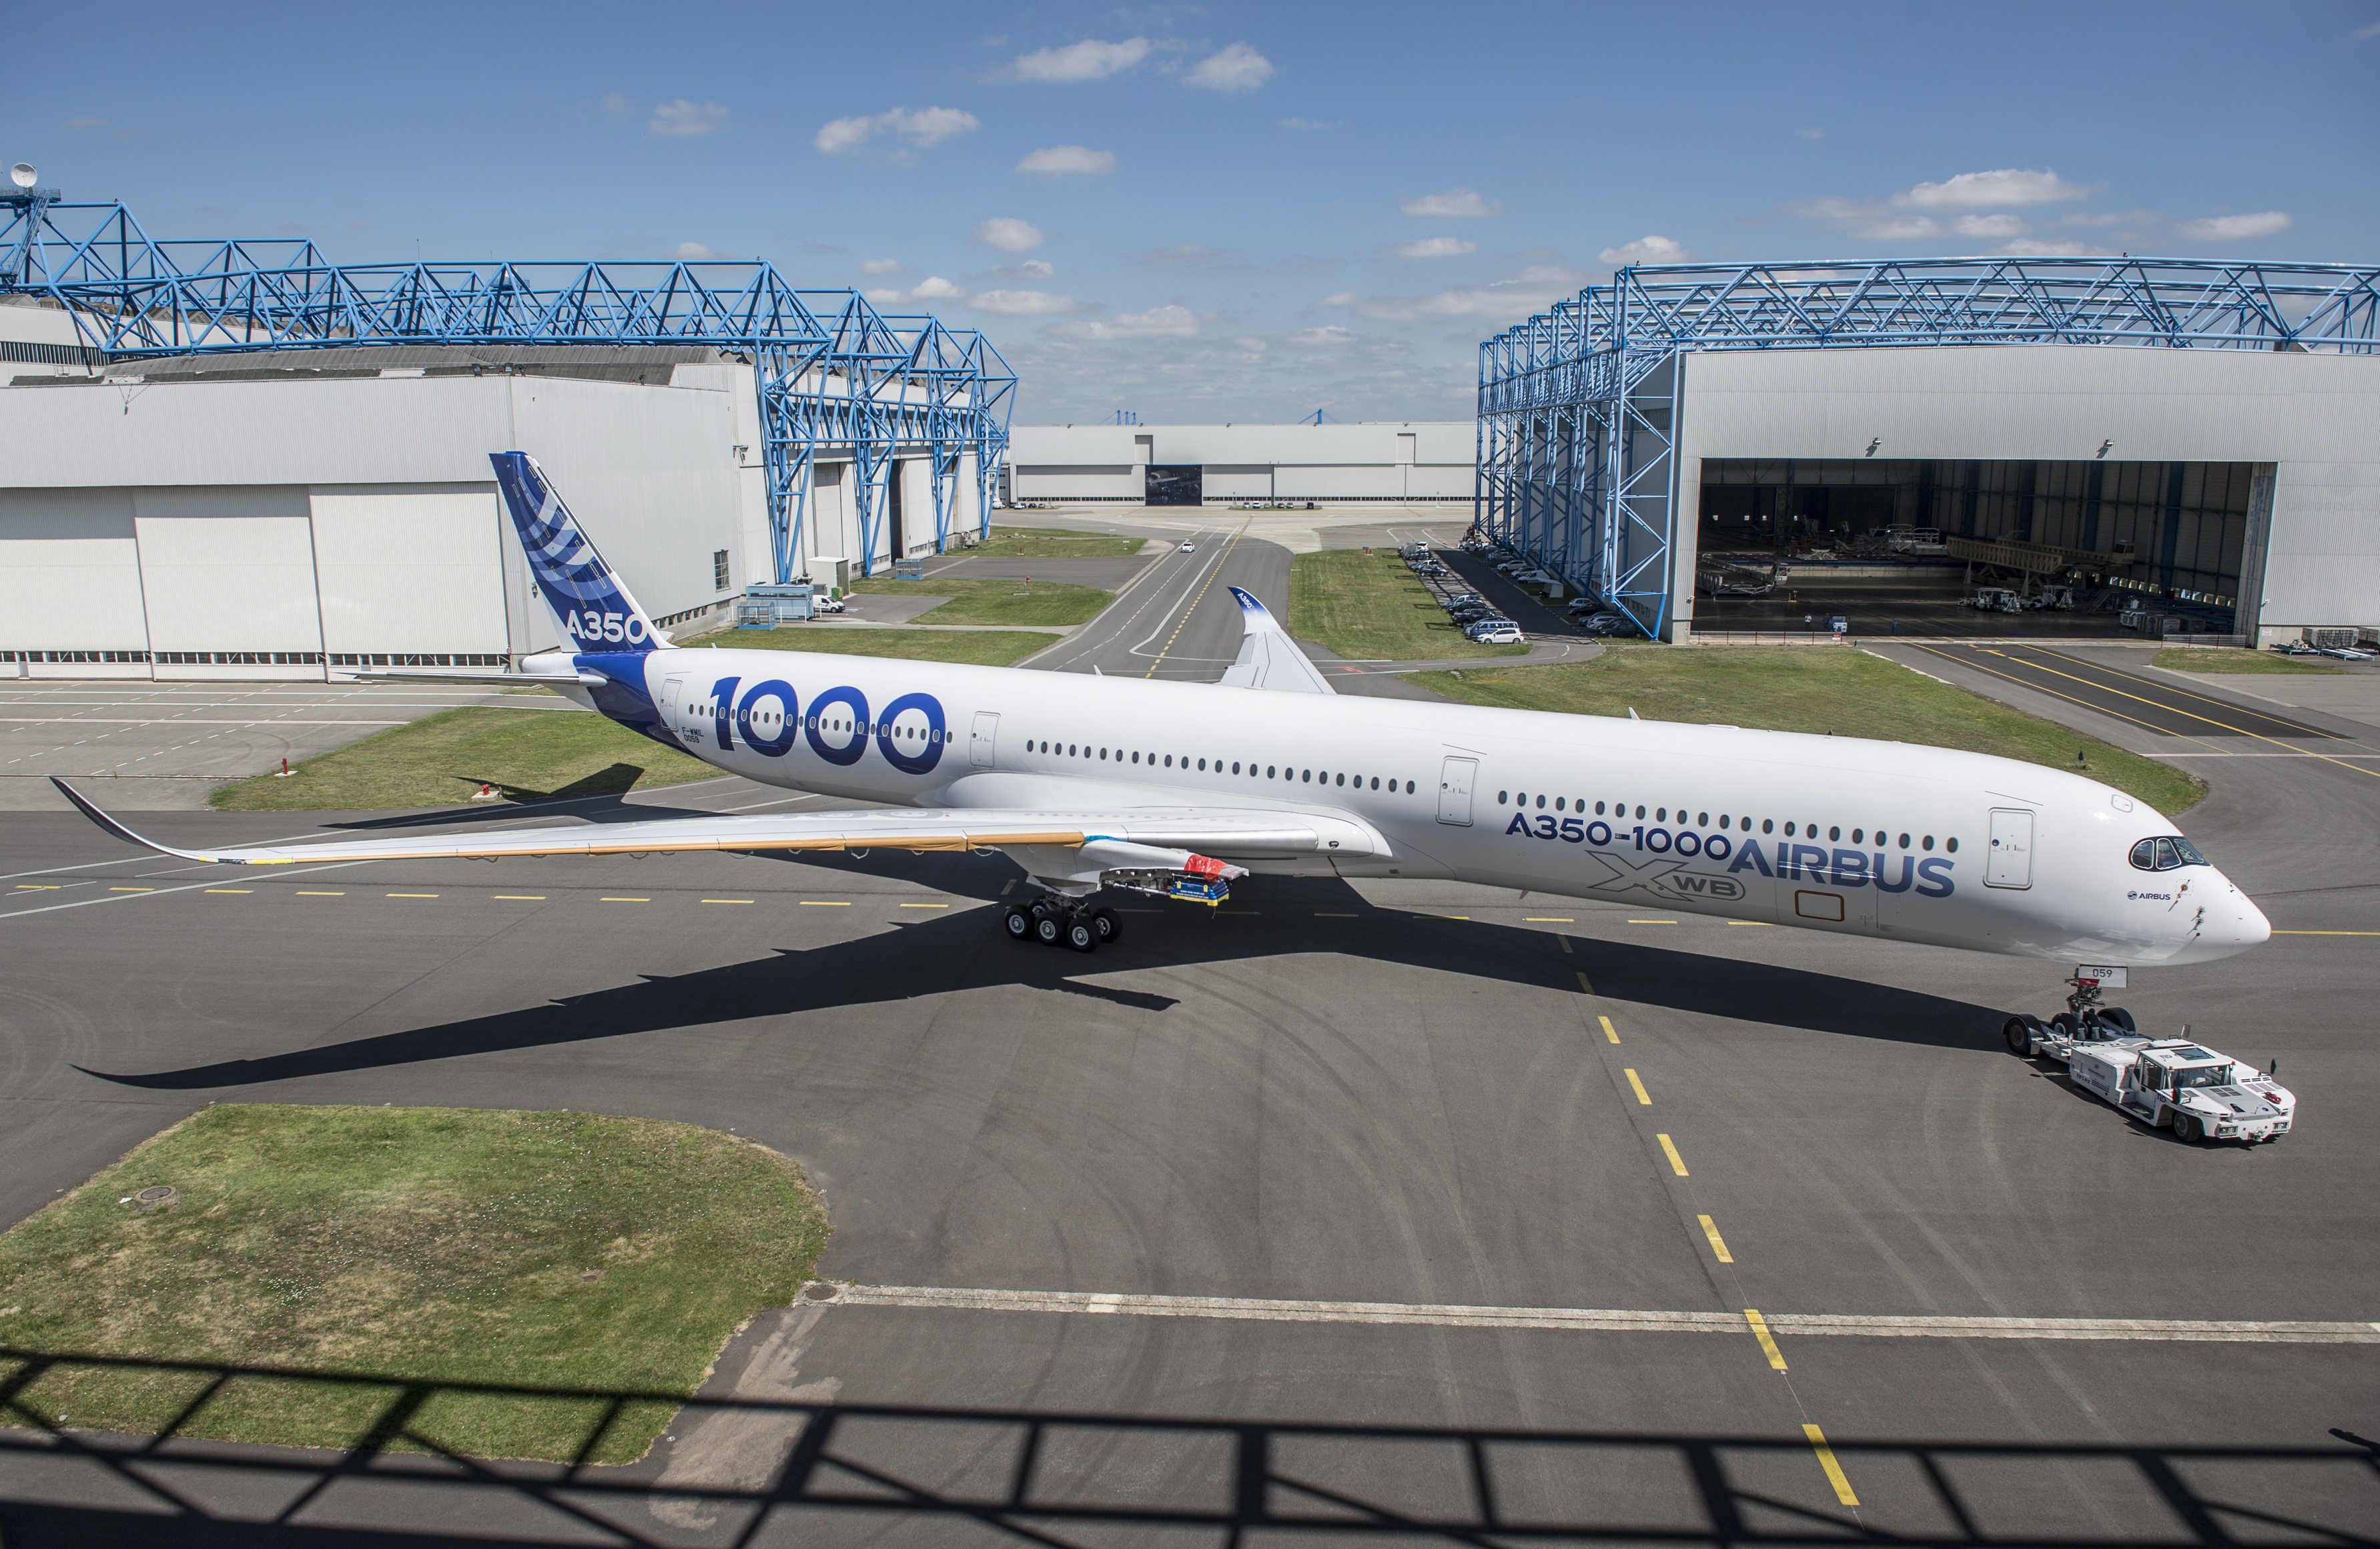 Second A350 1000 Test Aircraft Rolls Out Of Paint Shop